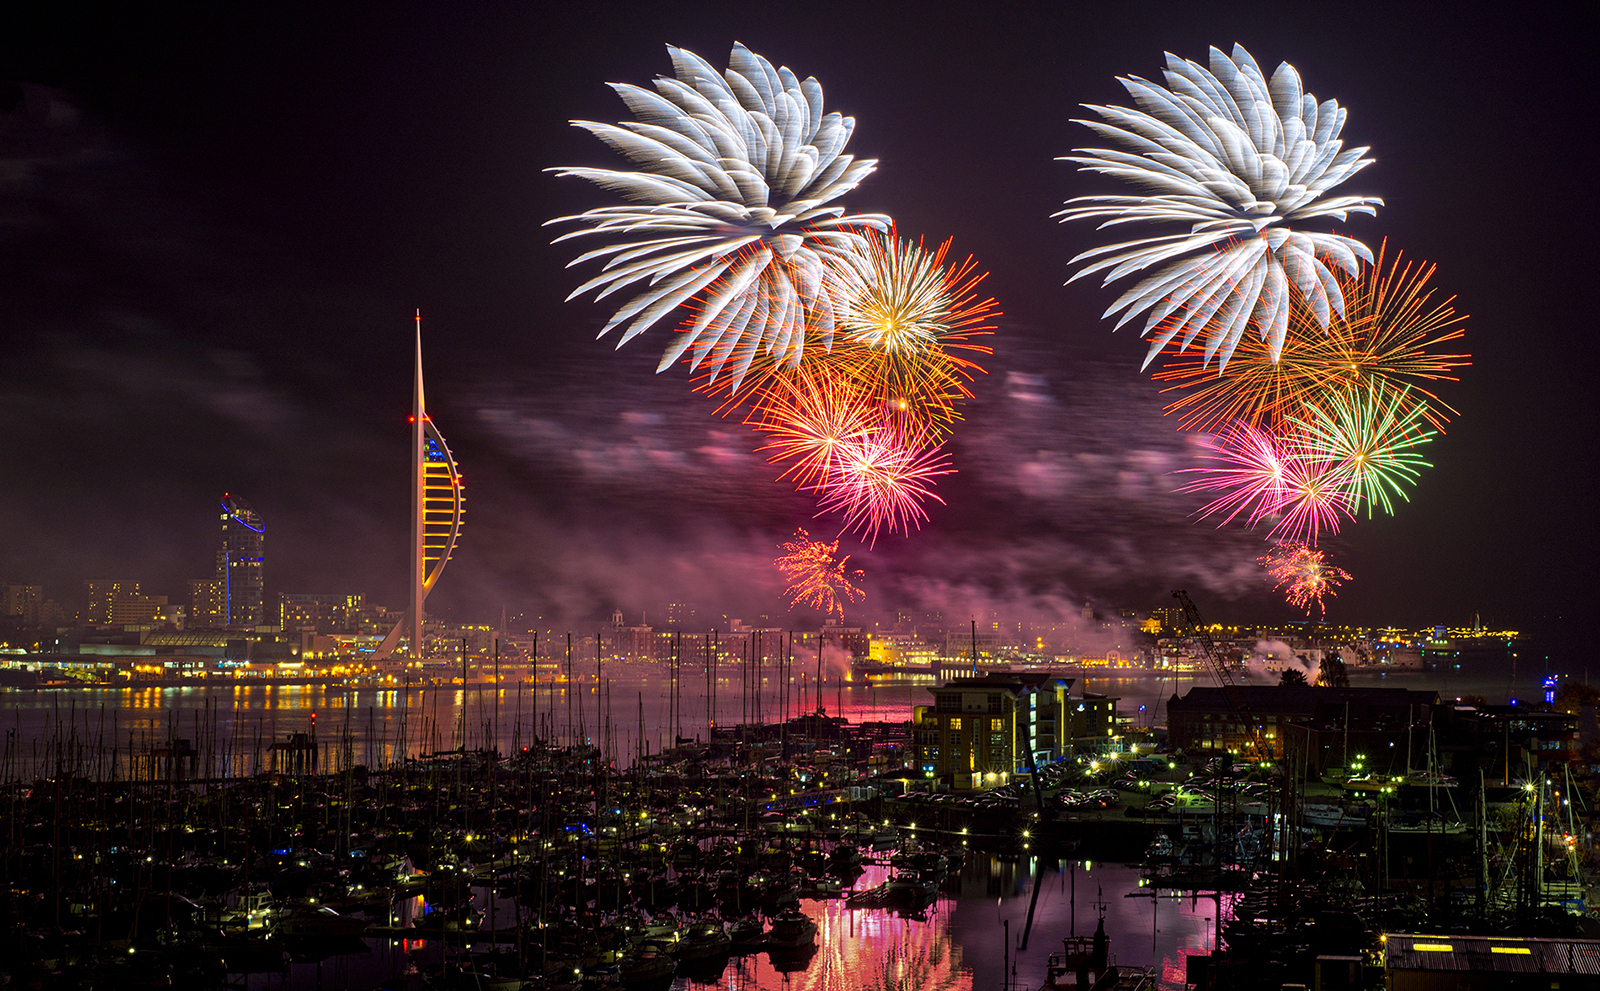 Paul-Adams-Fireworks-over-Portsmouth-Harbour-10